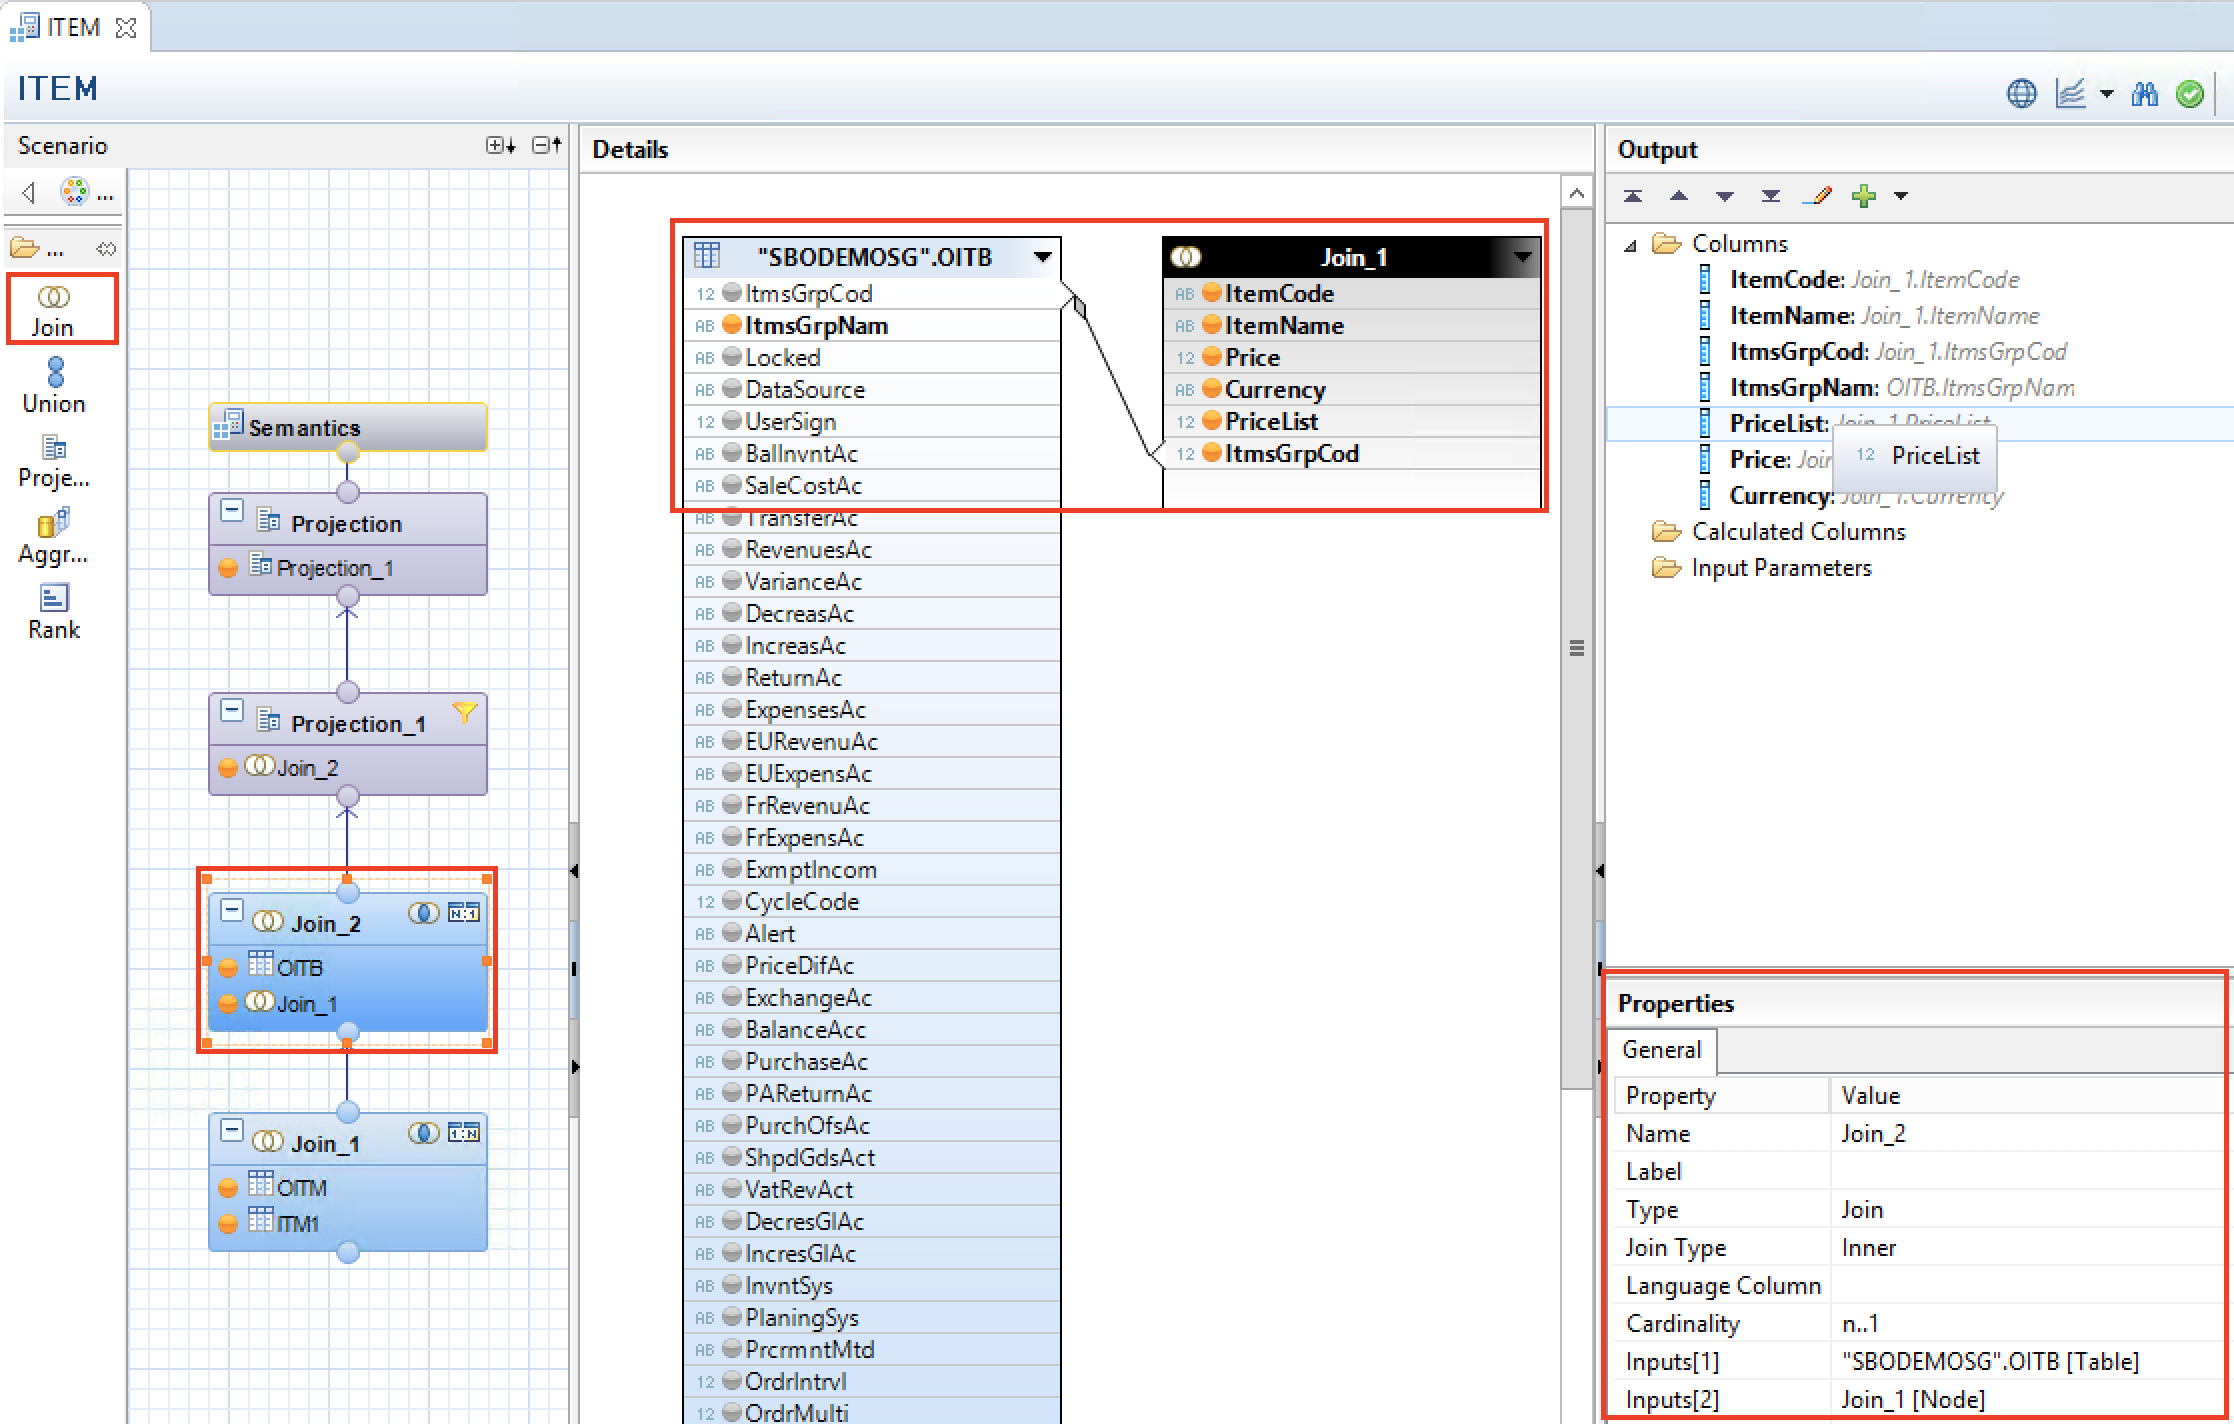 Build & Deploy SAP Fiori App on Mobile Devices, Consuming